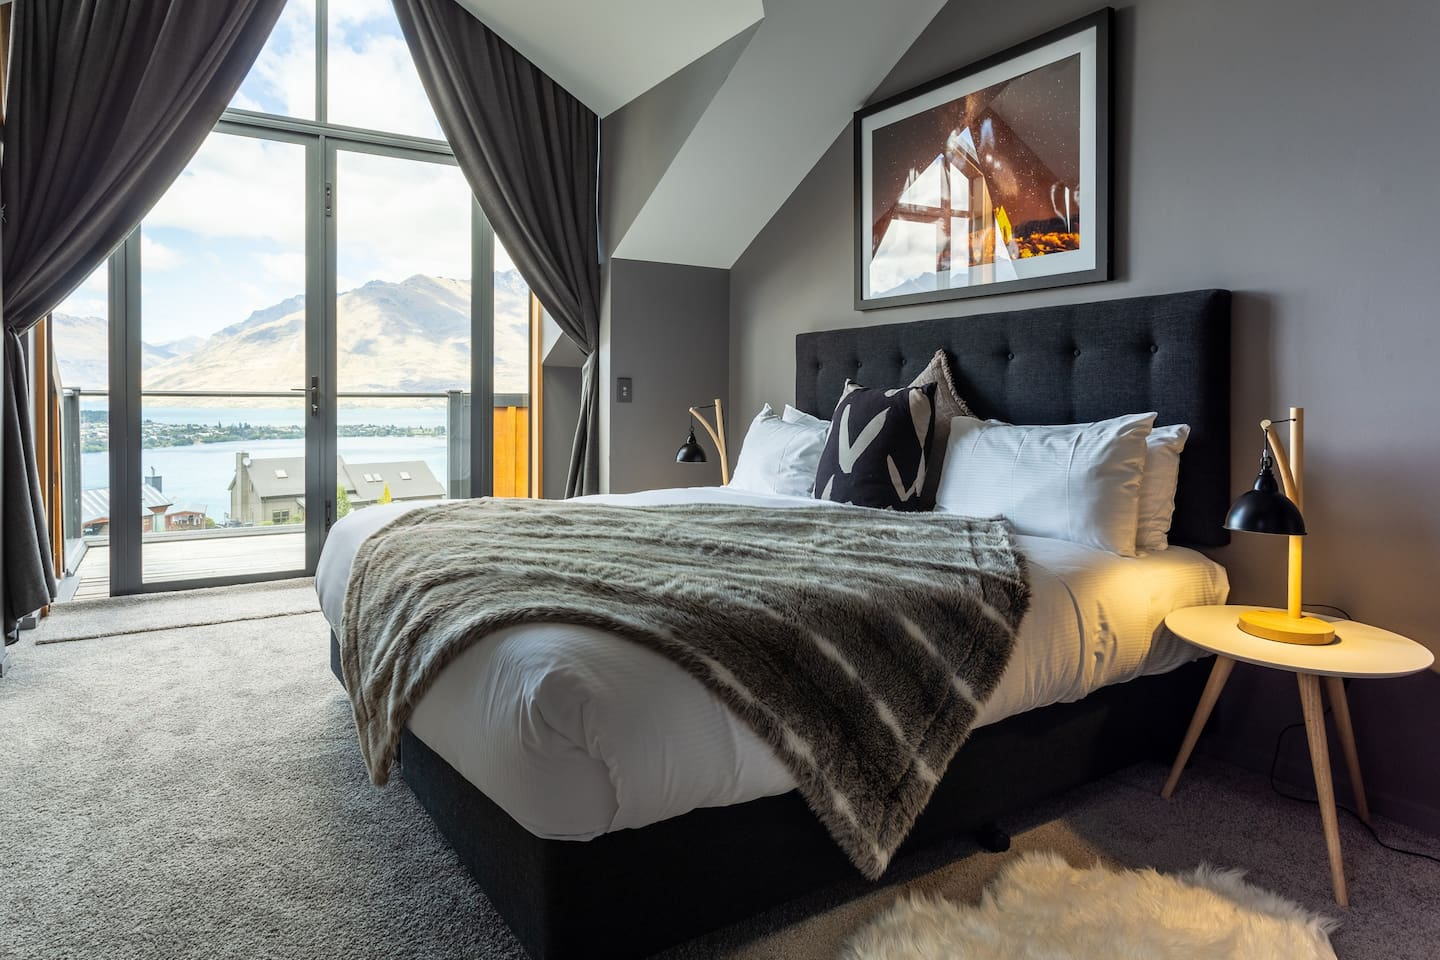 Oversize master bedroom on ground floor with combustion fireplace, balcony and ensuite